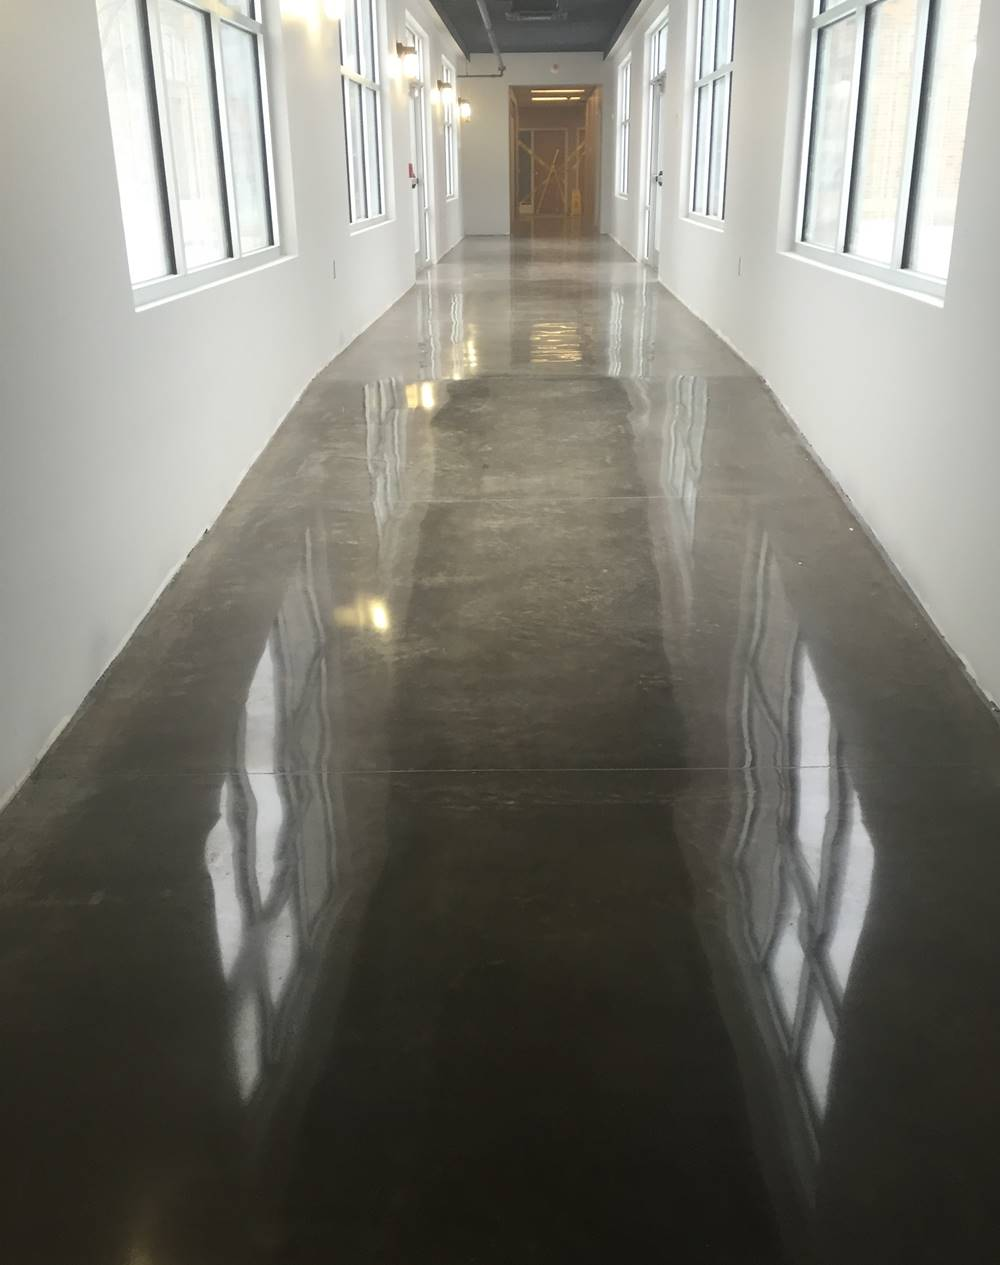 Polished concrete floor that was accomplished with a Terrco Concrete Grinder